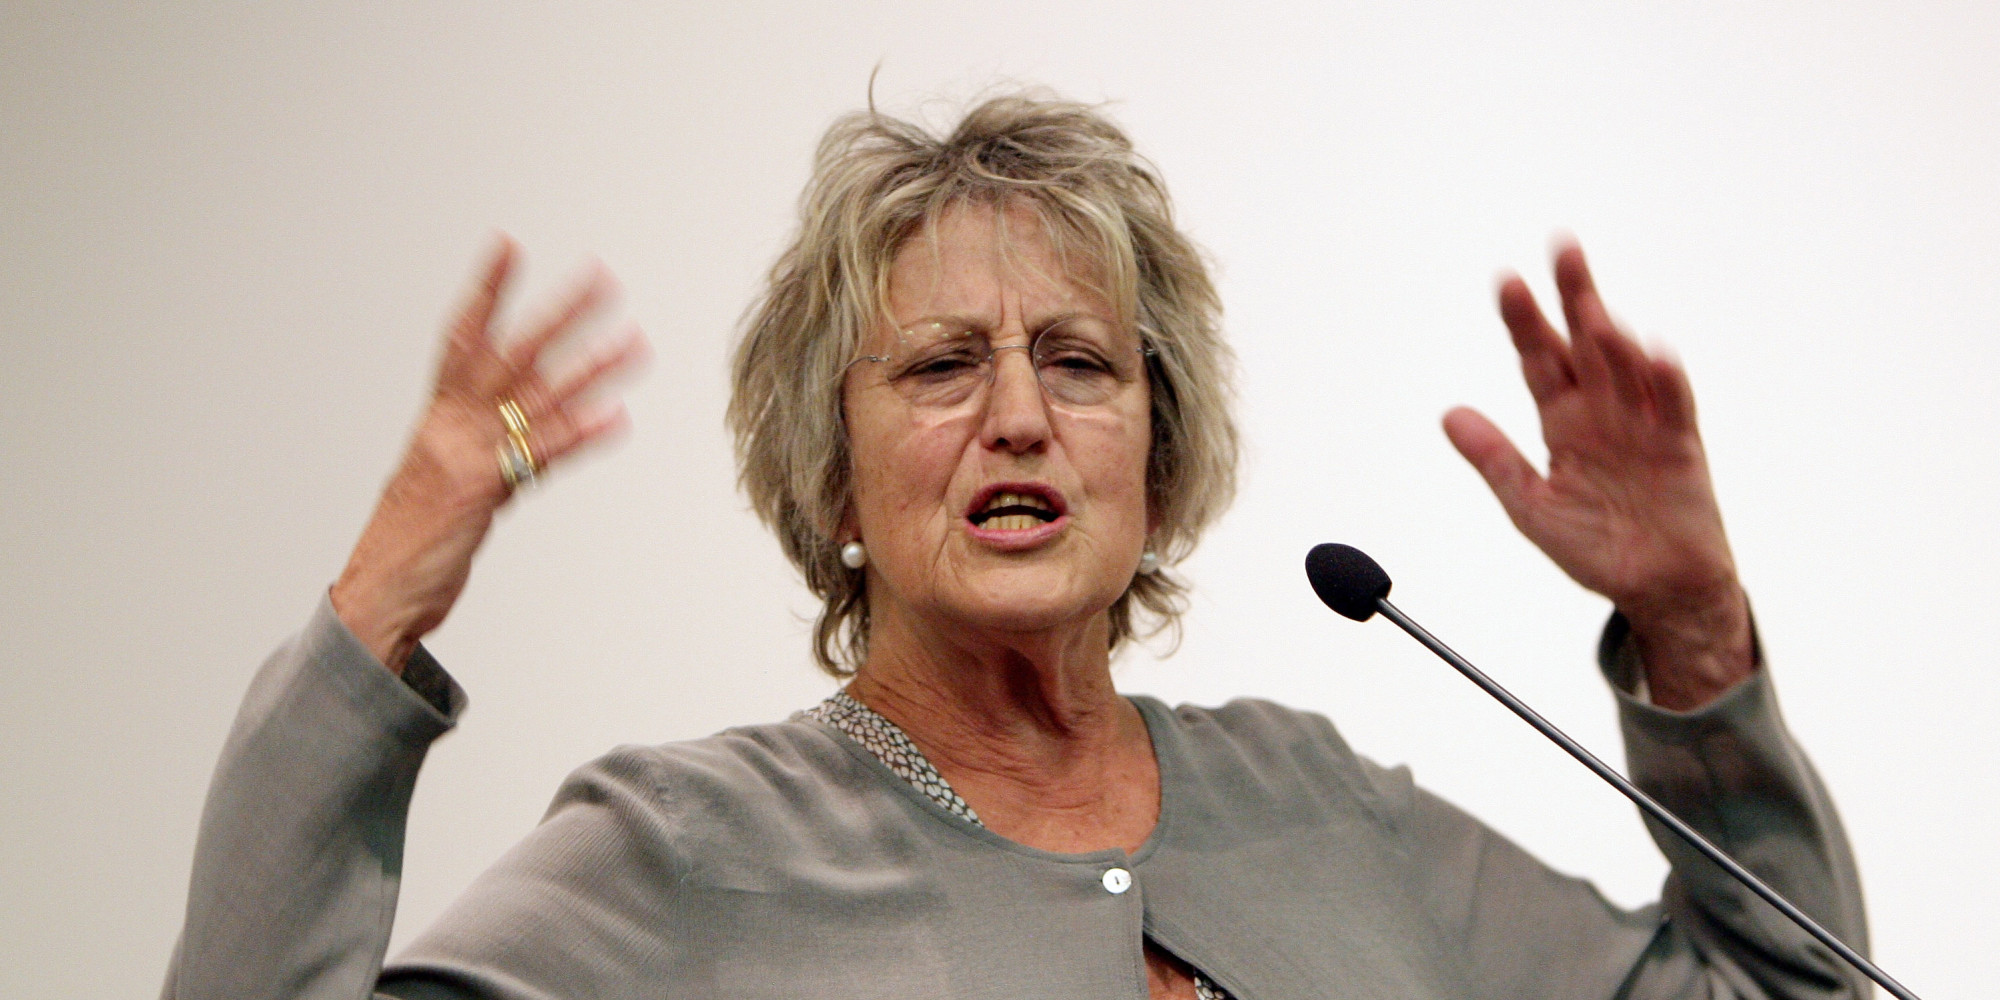 Germaine greer masculinity essay summary